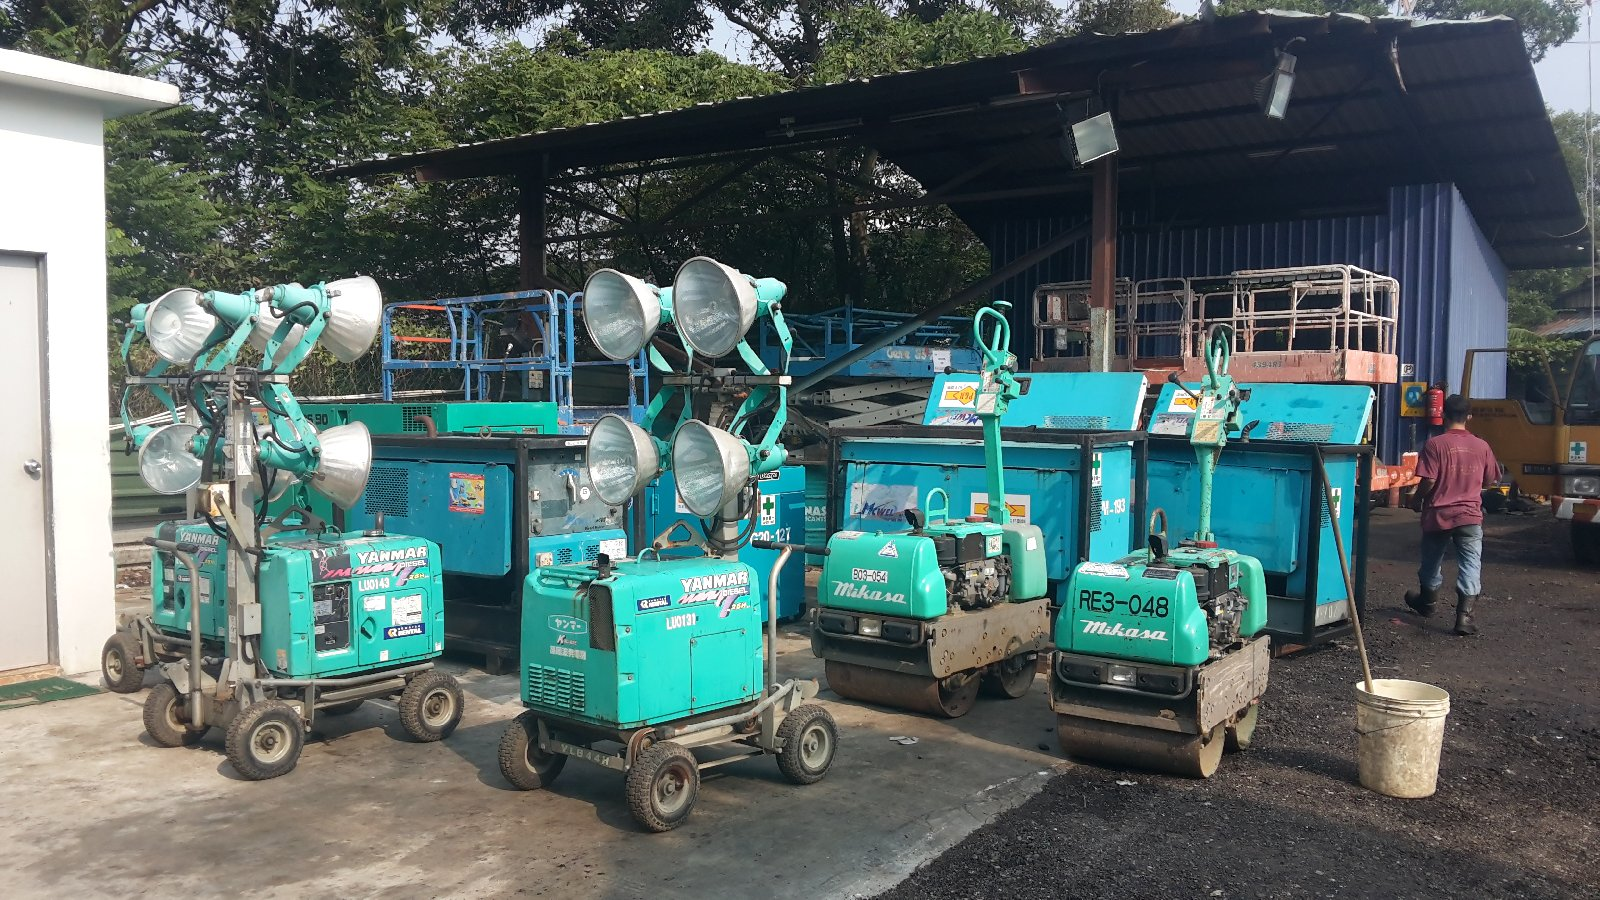 1 ton roller , Lighting tower 4x4 for sales/ rent in Johor a